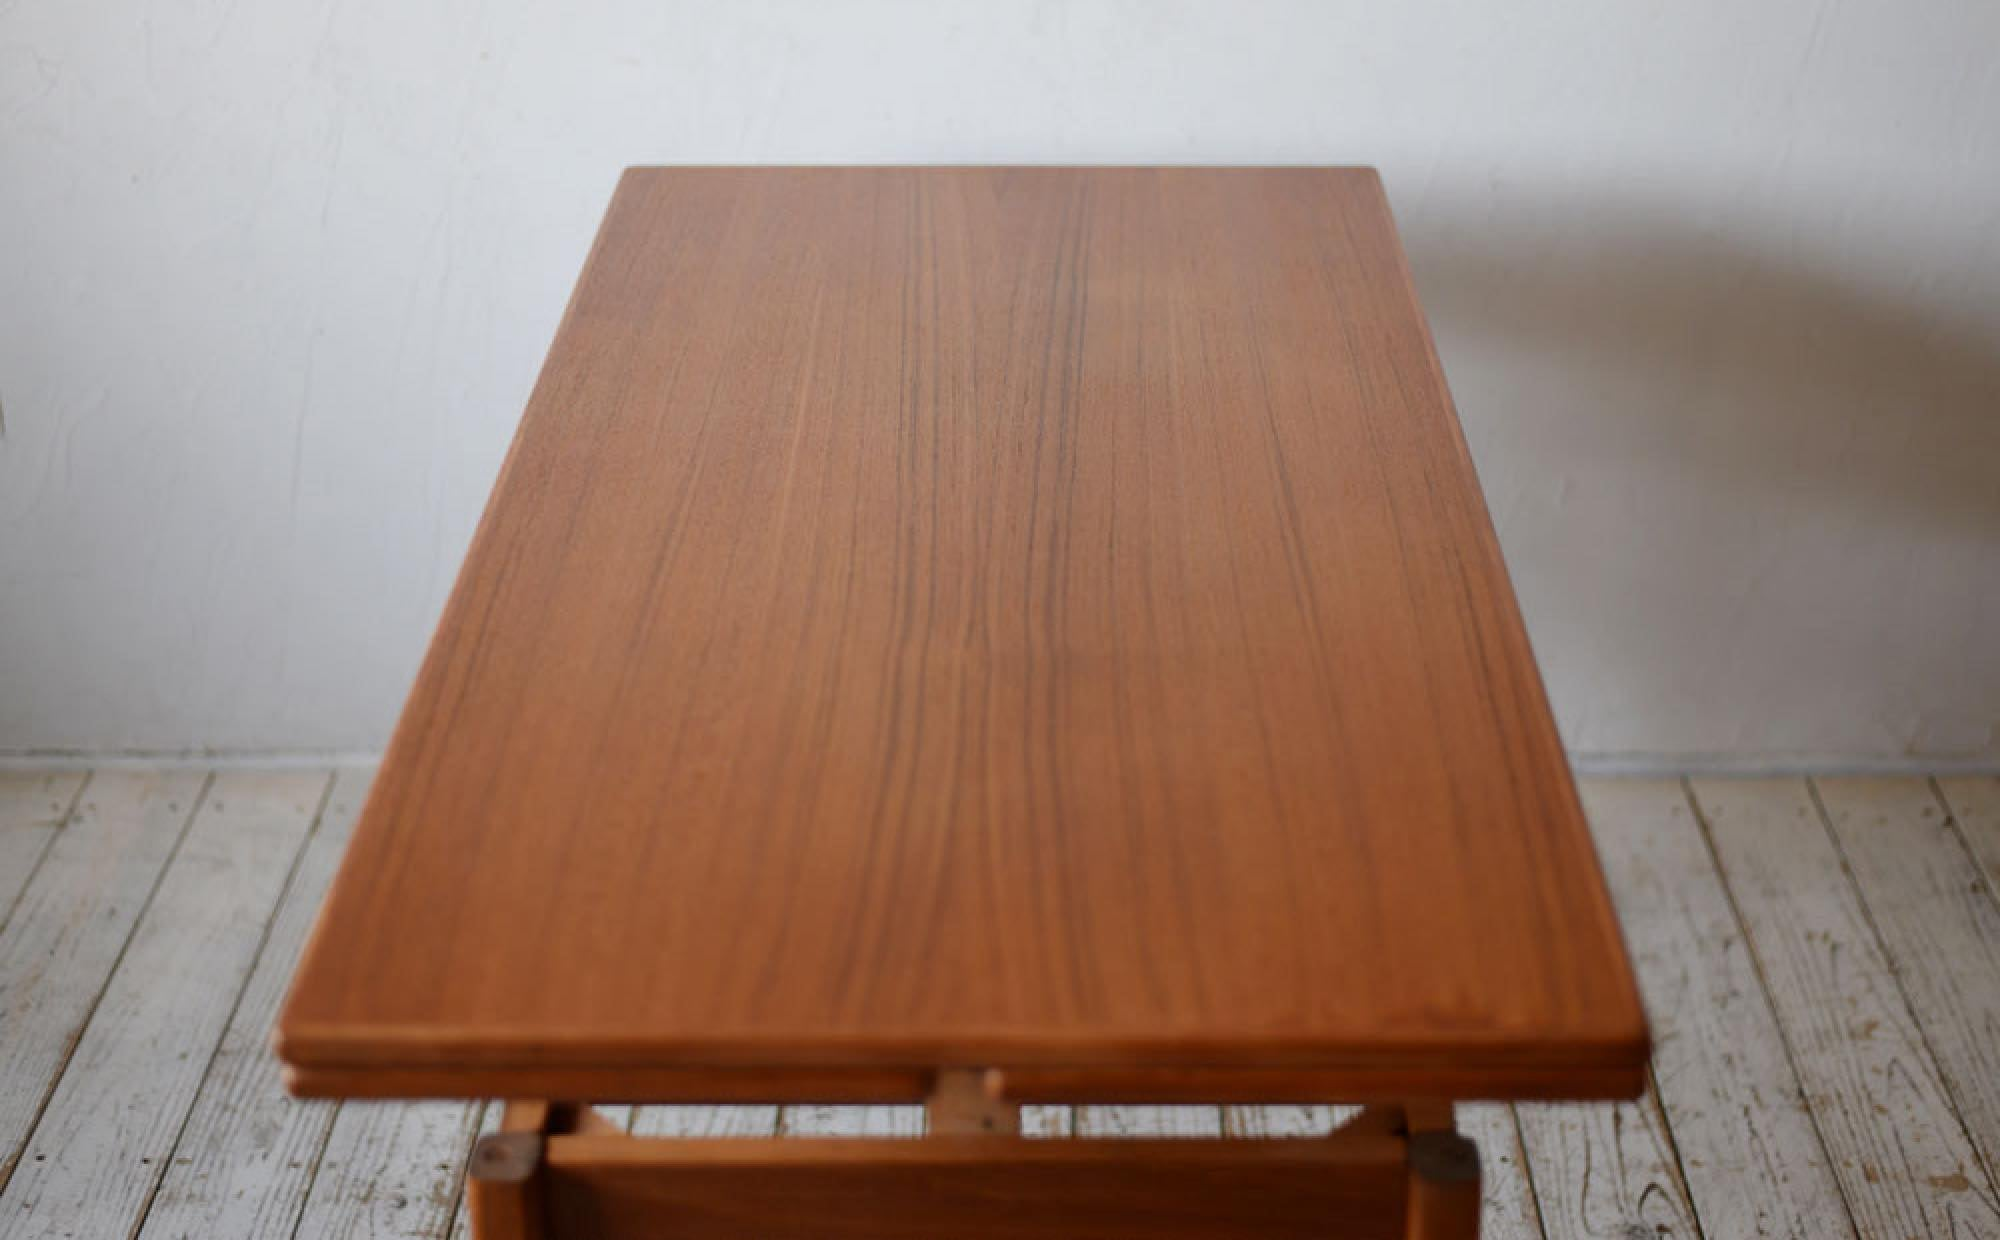 Elevator Table D-R204D331